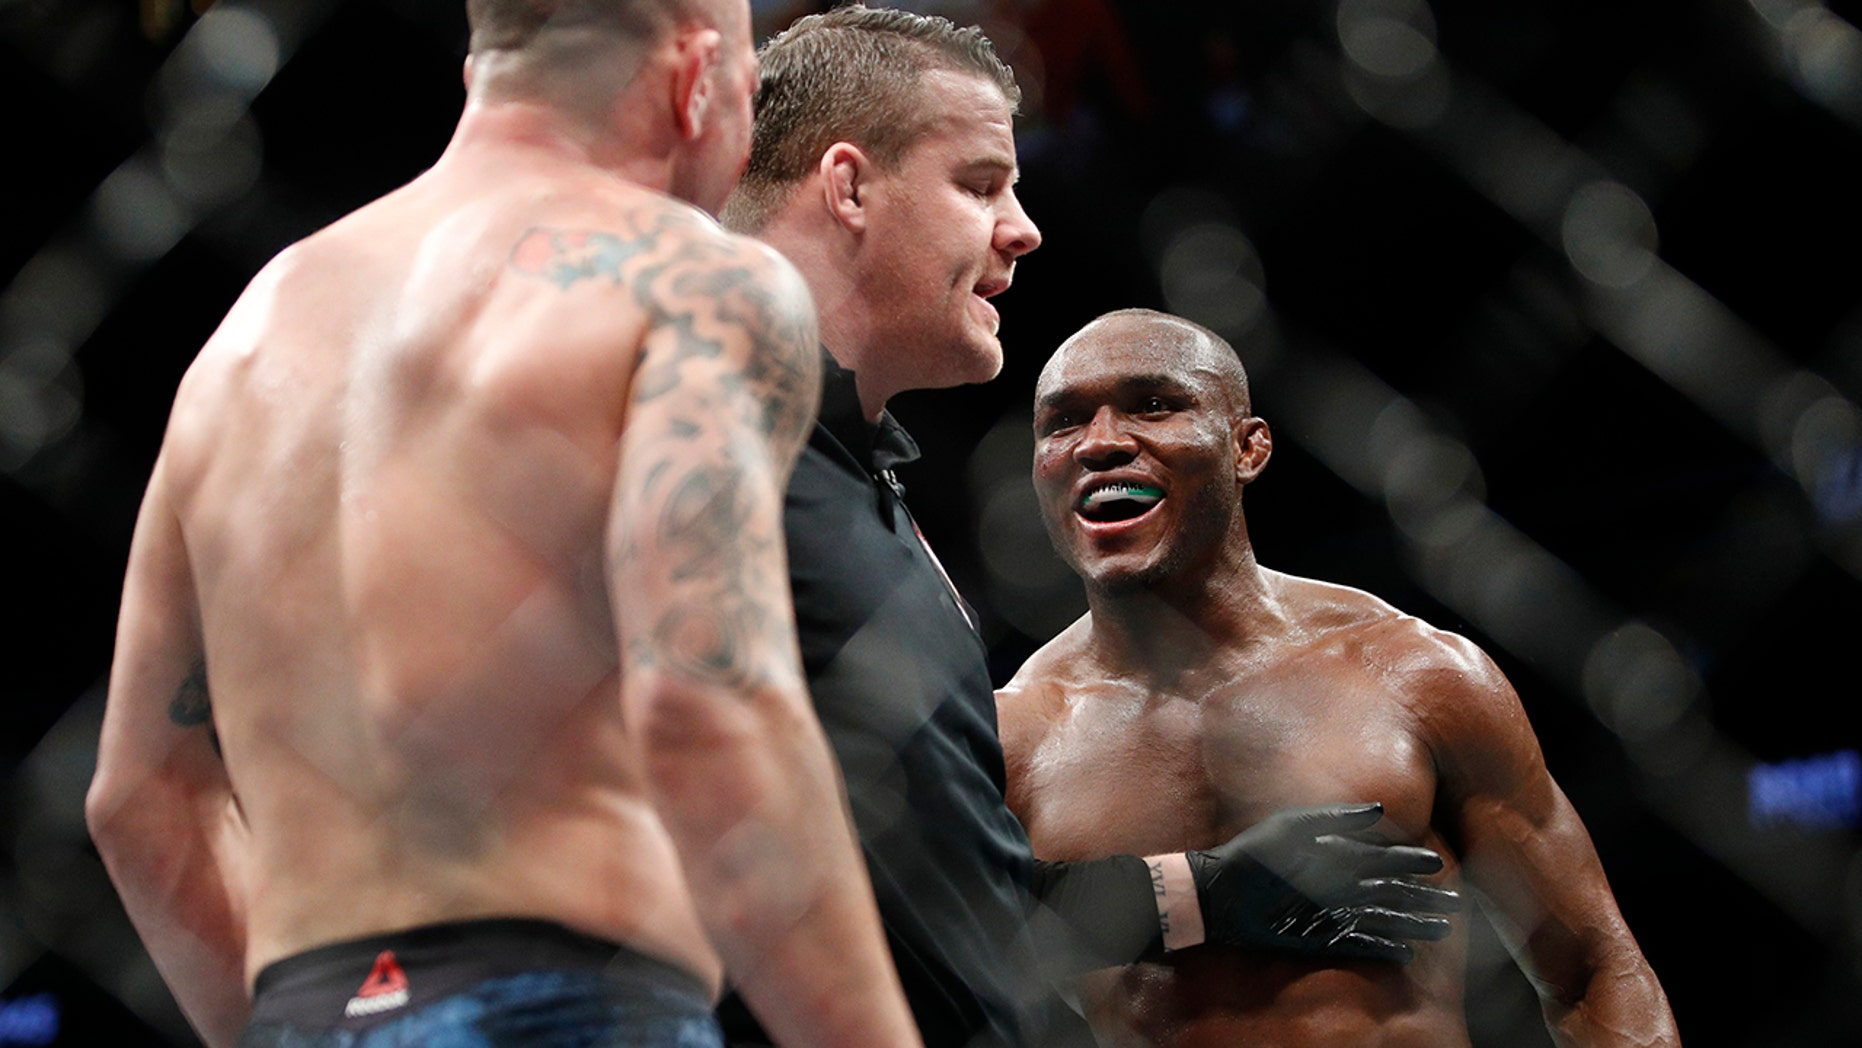 Kamaru Usman, right, taunts Colby Covington in a mixed martial arts welterweight championship bout at UFC 245, Saturday, Dec. 14, 2019, in Las Vegas. (AP Photo/John Locher)